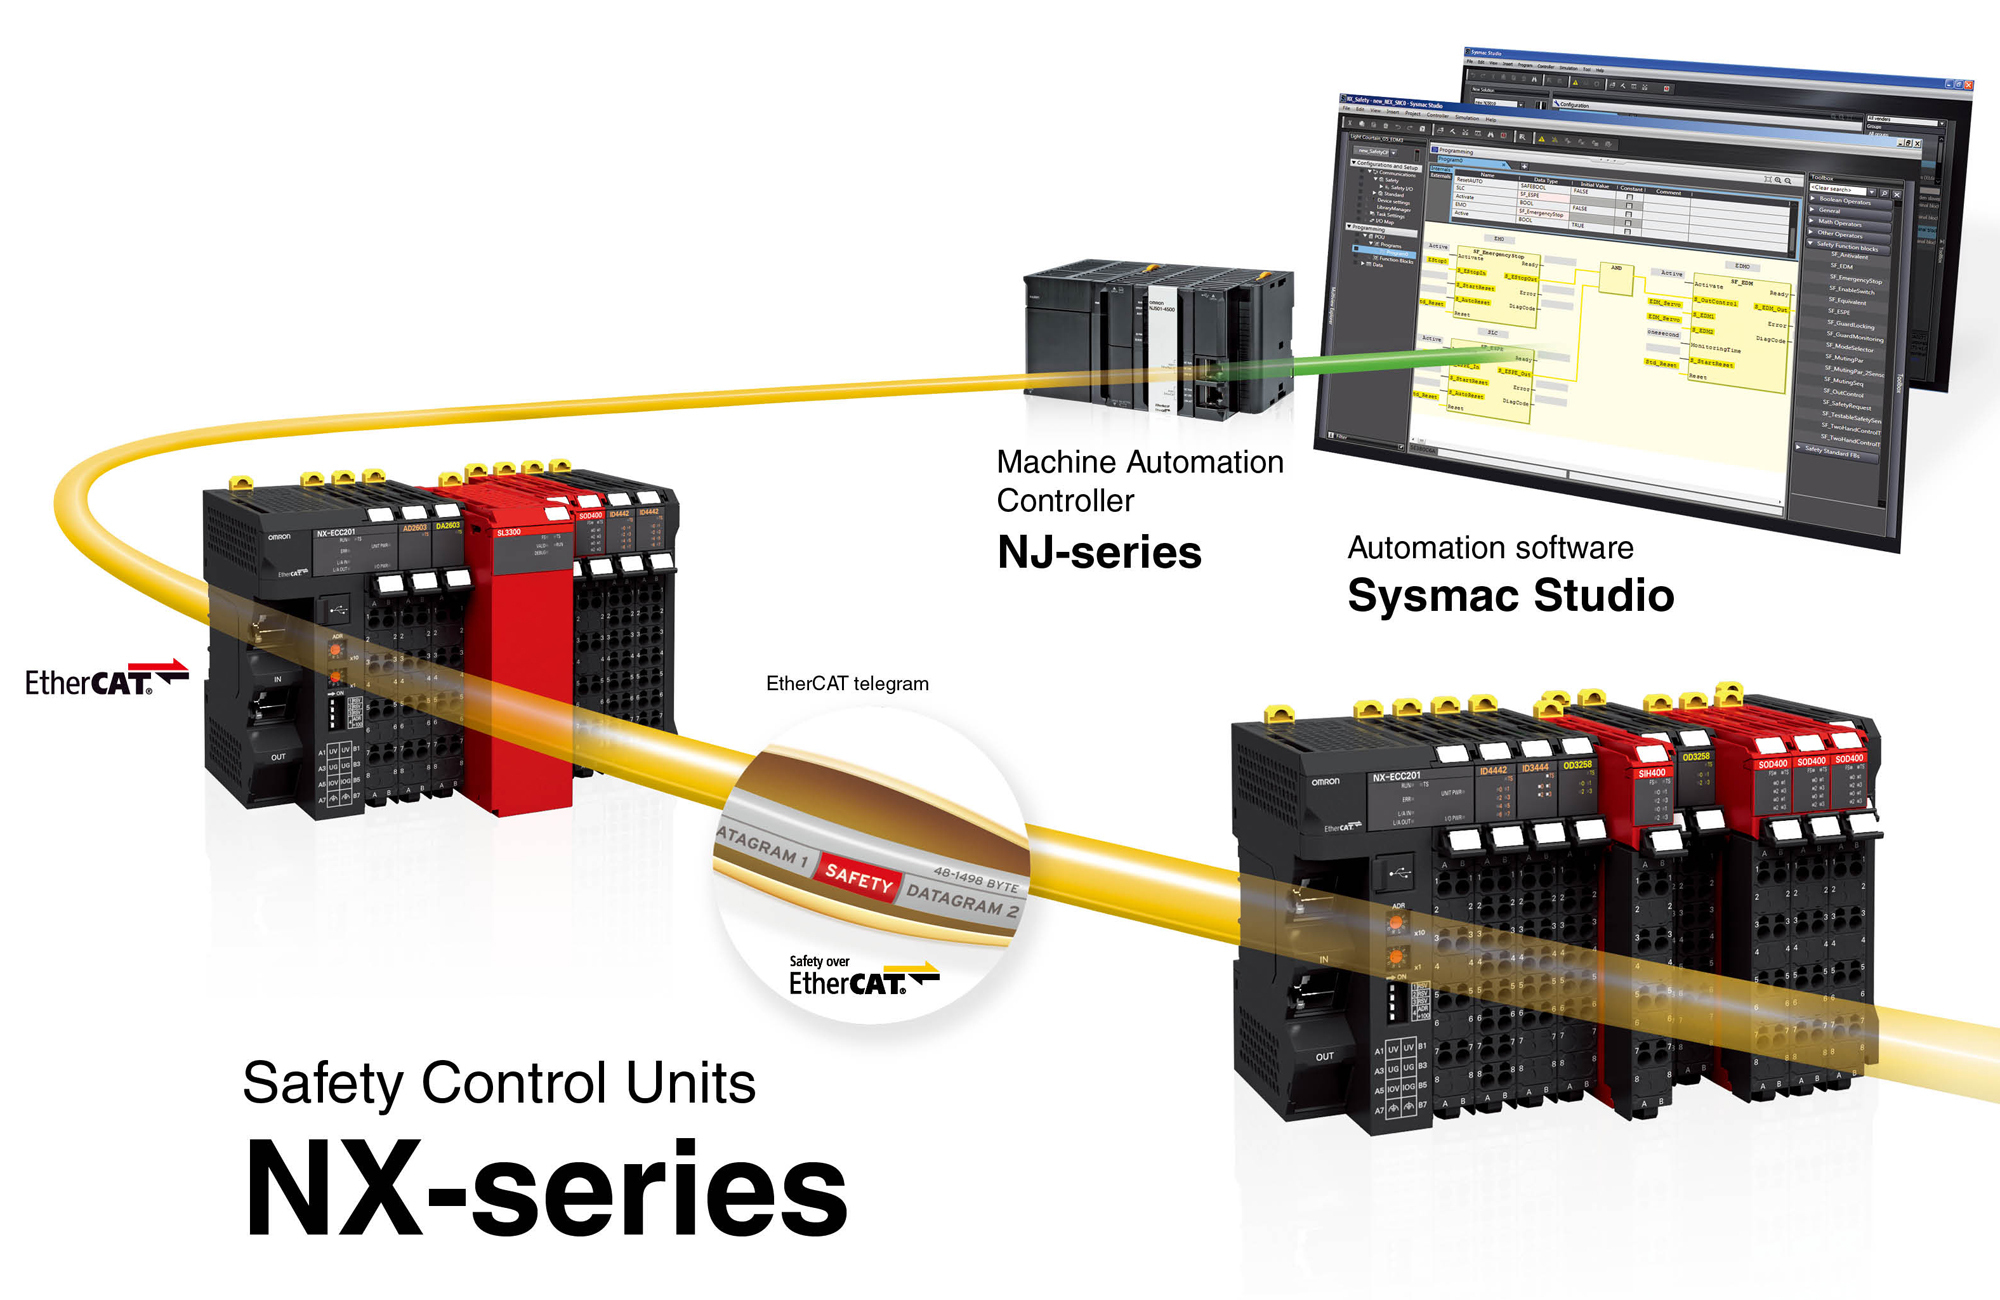 Omron Releases New NX Series Safety Control Units with Integrated